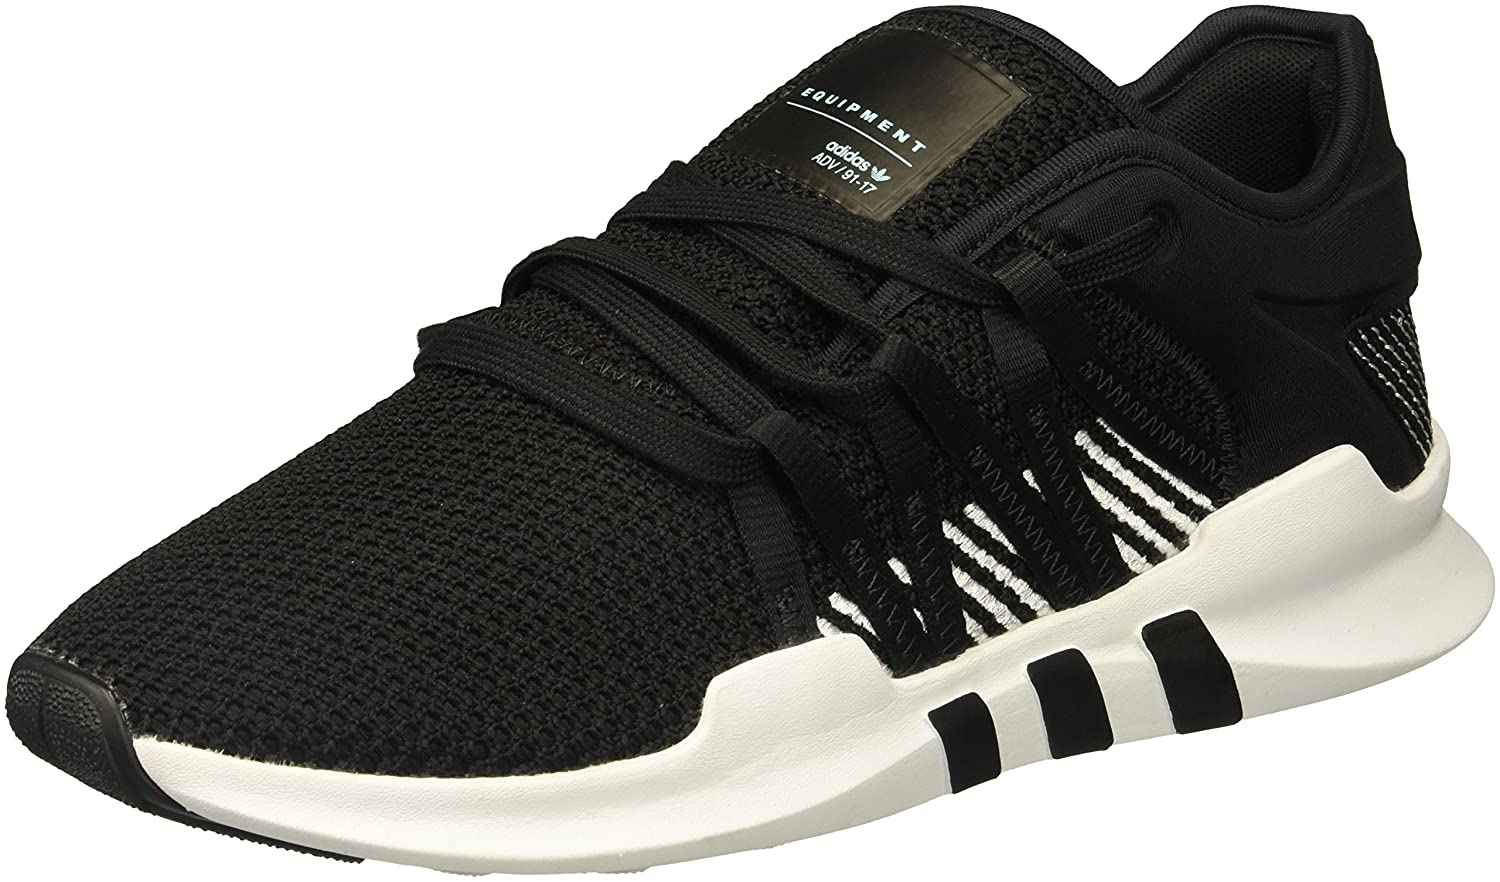 adidas Originals Women's EQT Racing Adv W Sneaker B01N7KFYS3 5 B(M) US|Black/Black/White